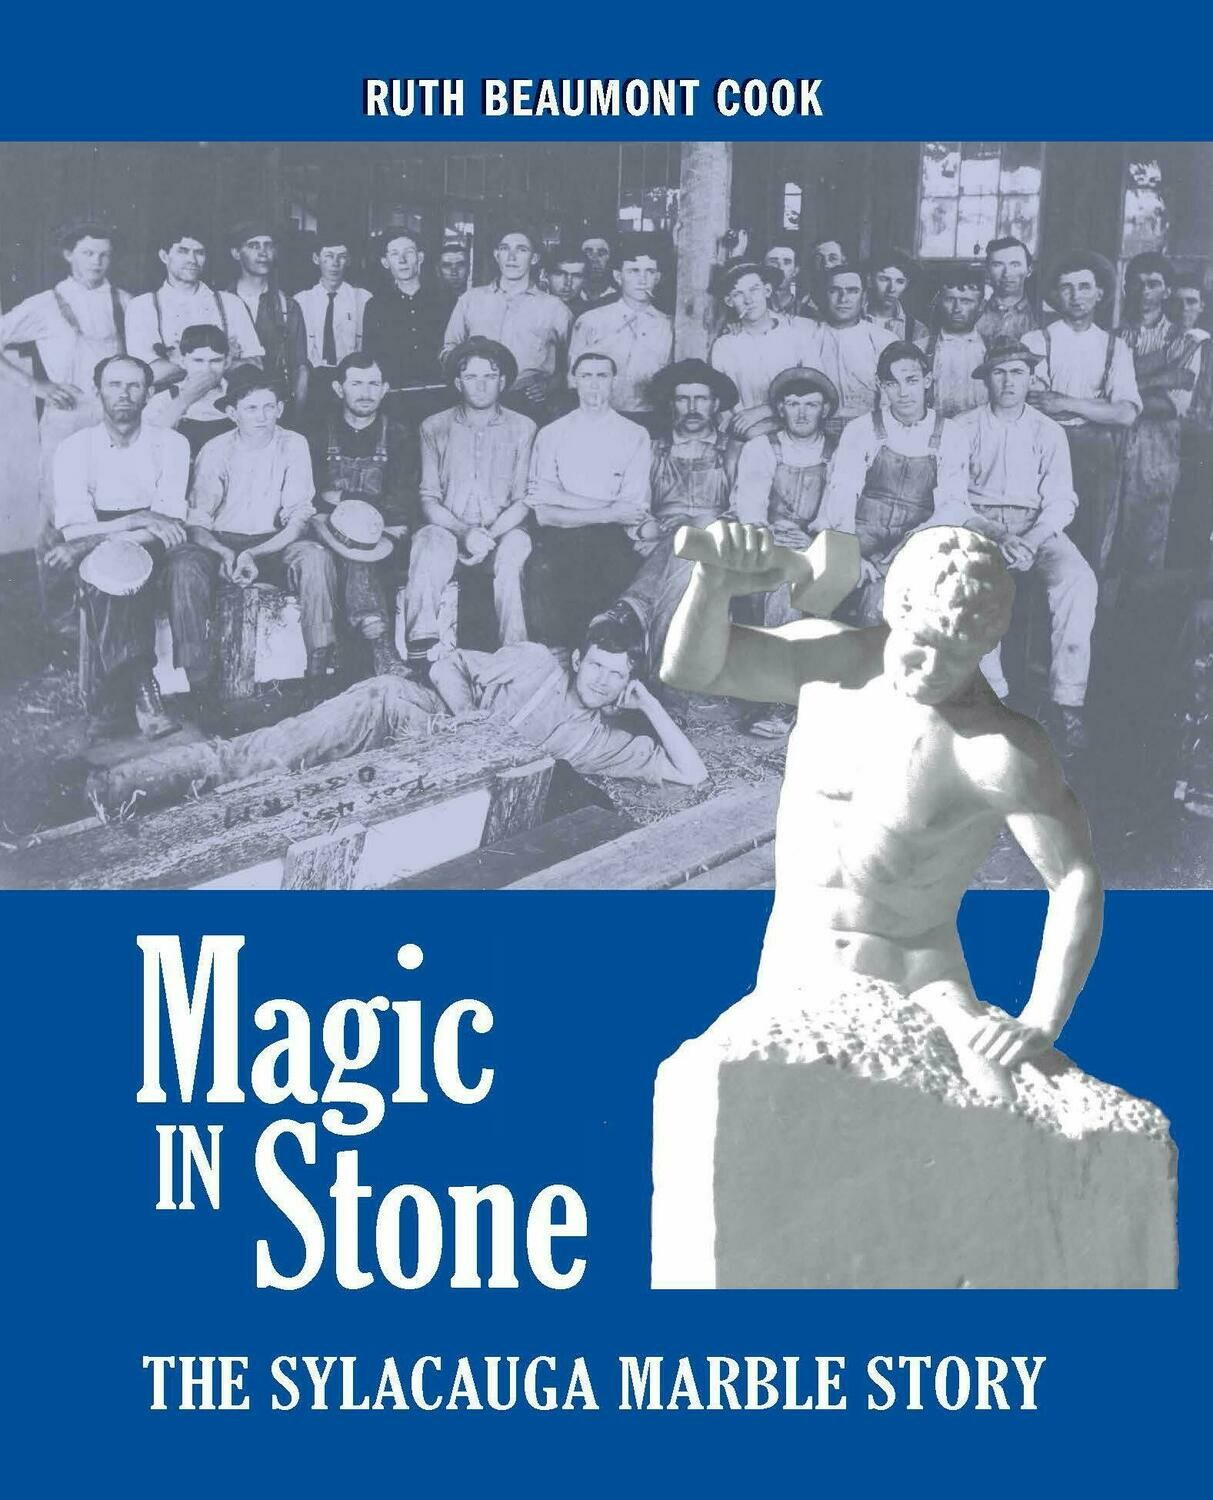 Magic in Stone: The Sylacauga Marble Story by Ruth Beaumont Cook